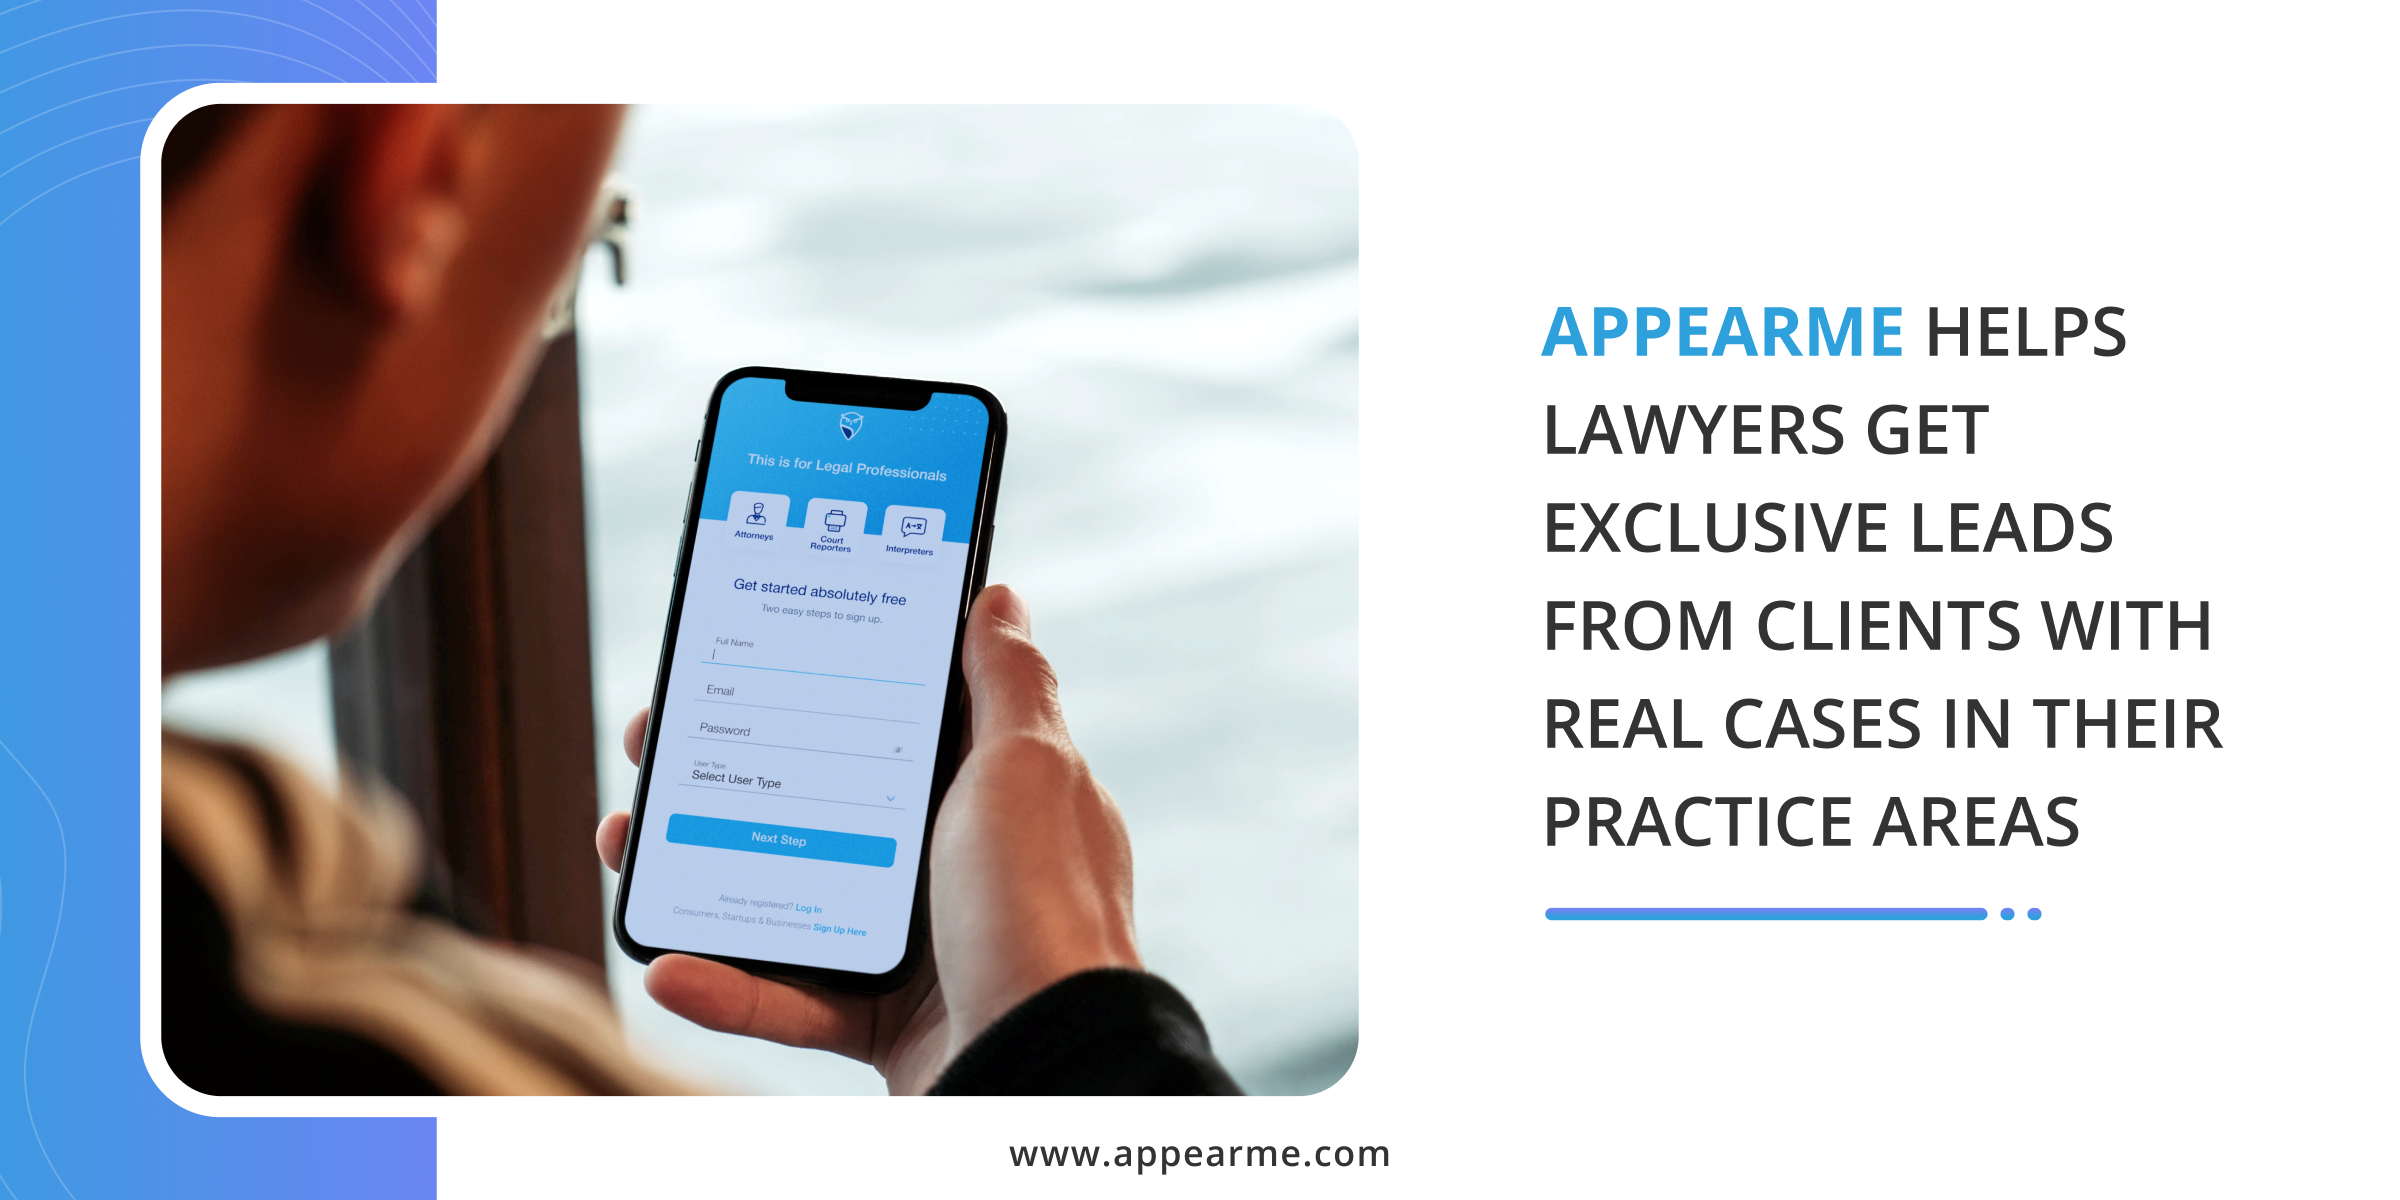 AndLawyers Helps Lawyers Get Exclusive Leads from Clients with Real Cases in Their Practice Areas